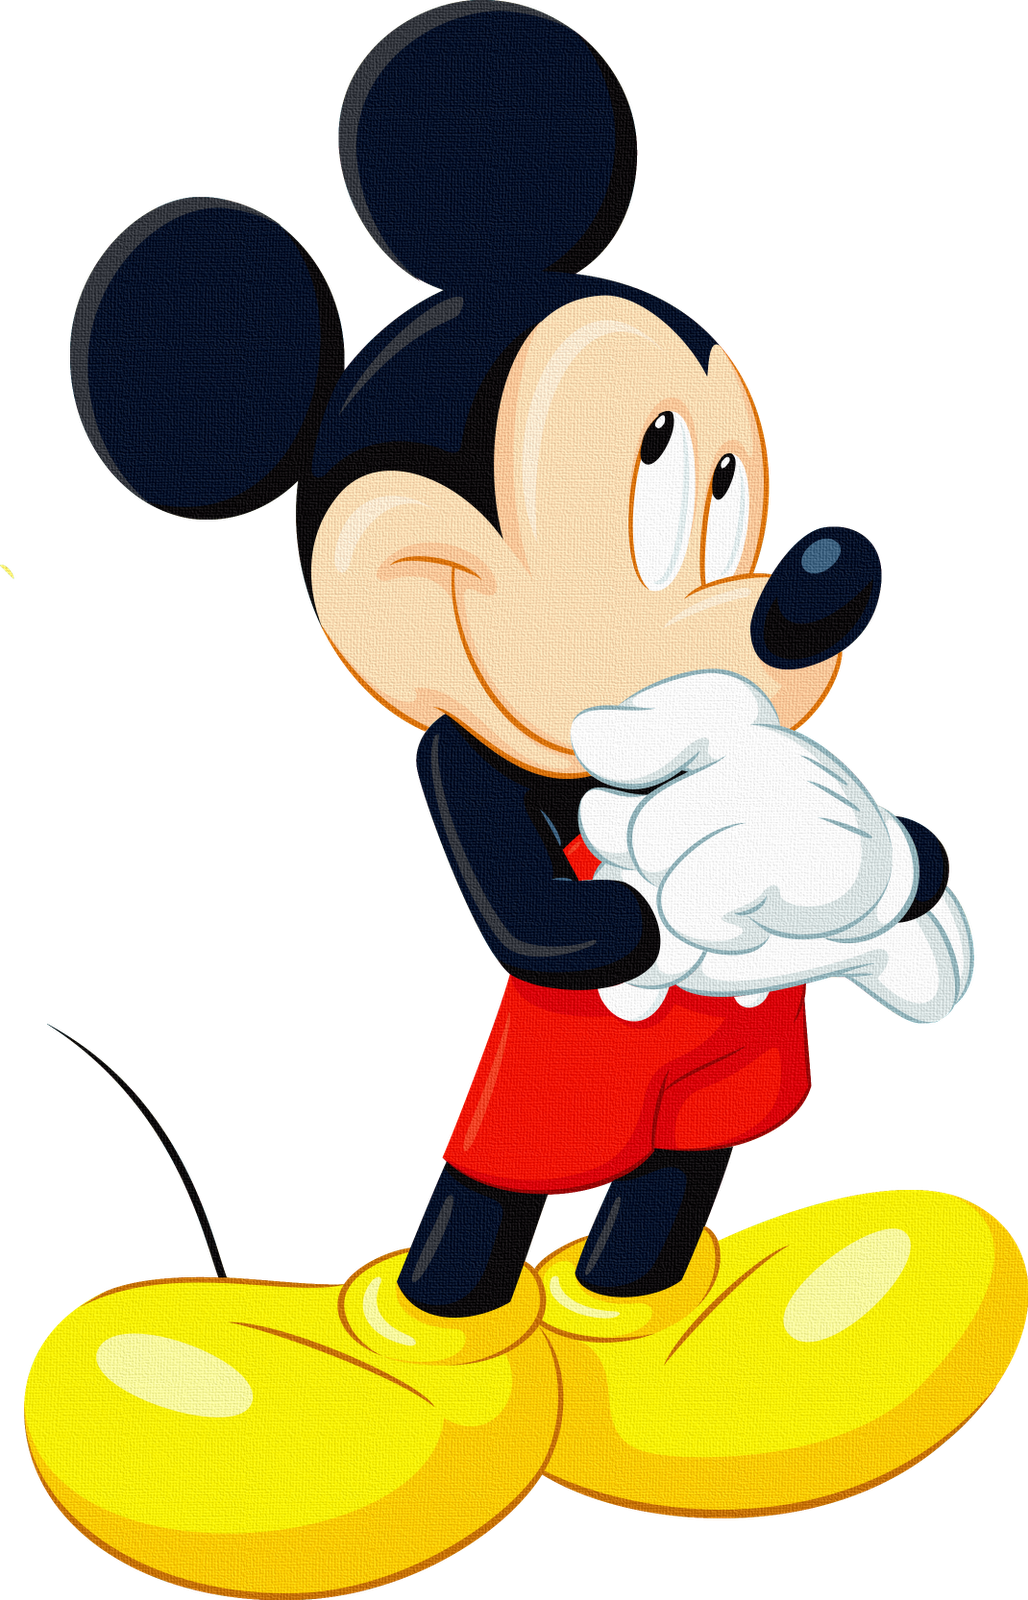 Mickey Mouse Clip Art Mickey Png Alta Resolucao Transparent Png